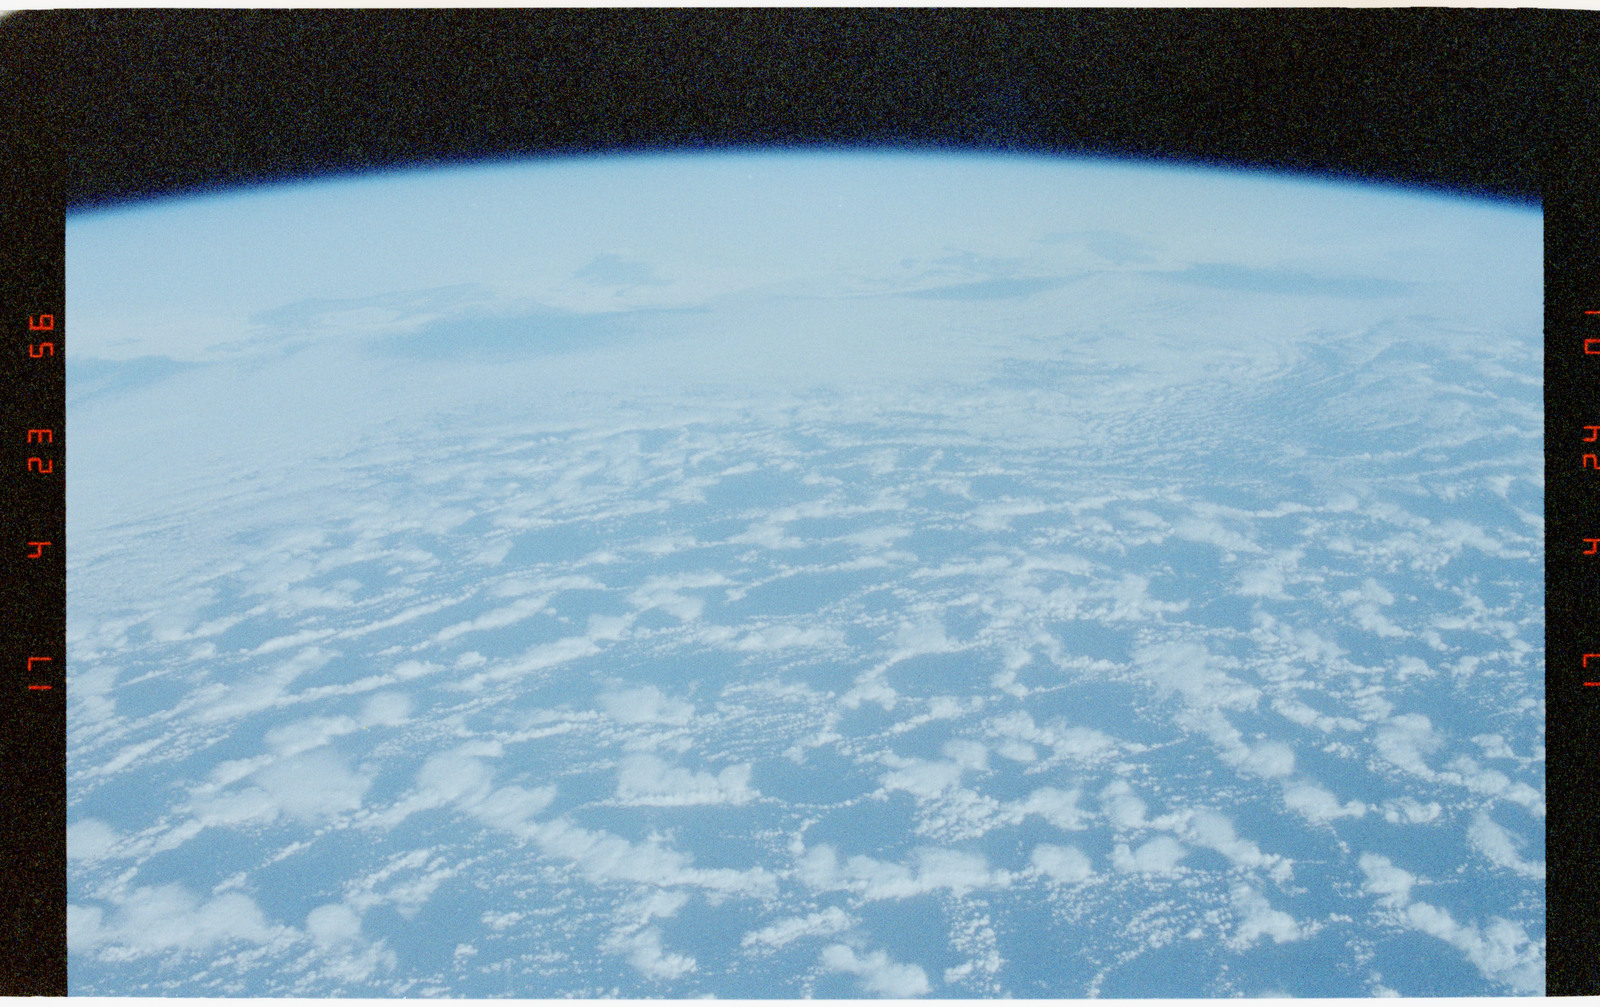 STS056-42-002 - STS-056 - Earth observations views of Earth limb and clouds - locations unknown.